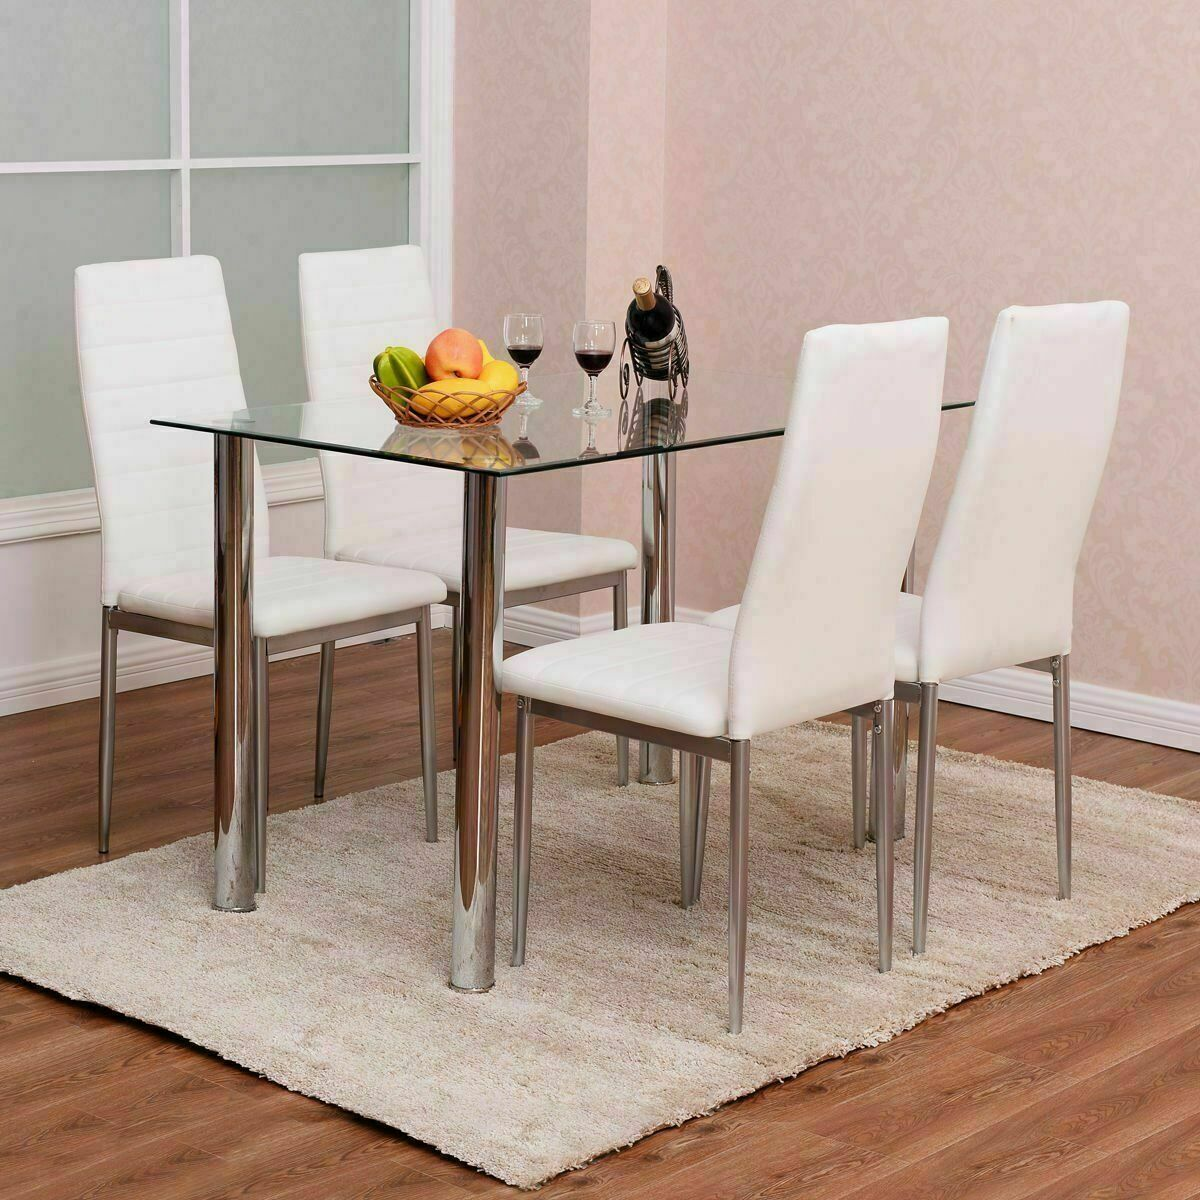 110cm Dining Table Set Tempered Glass Top Table 4 Chairs Kitchen